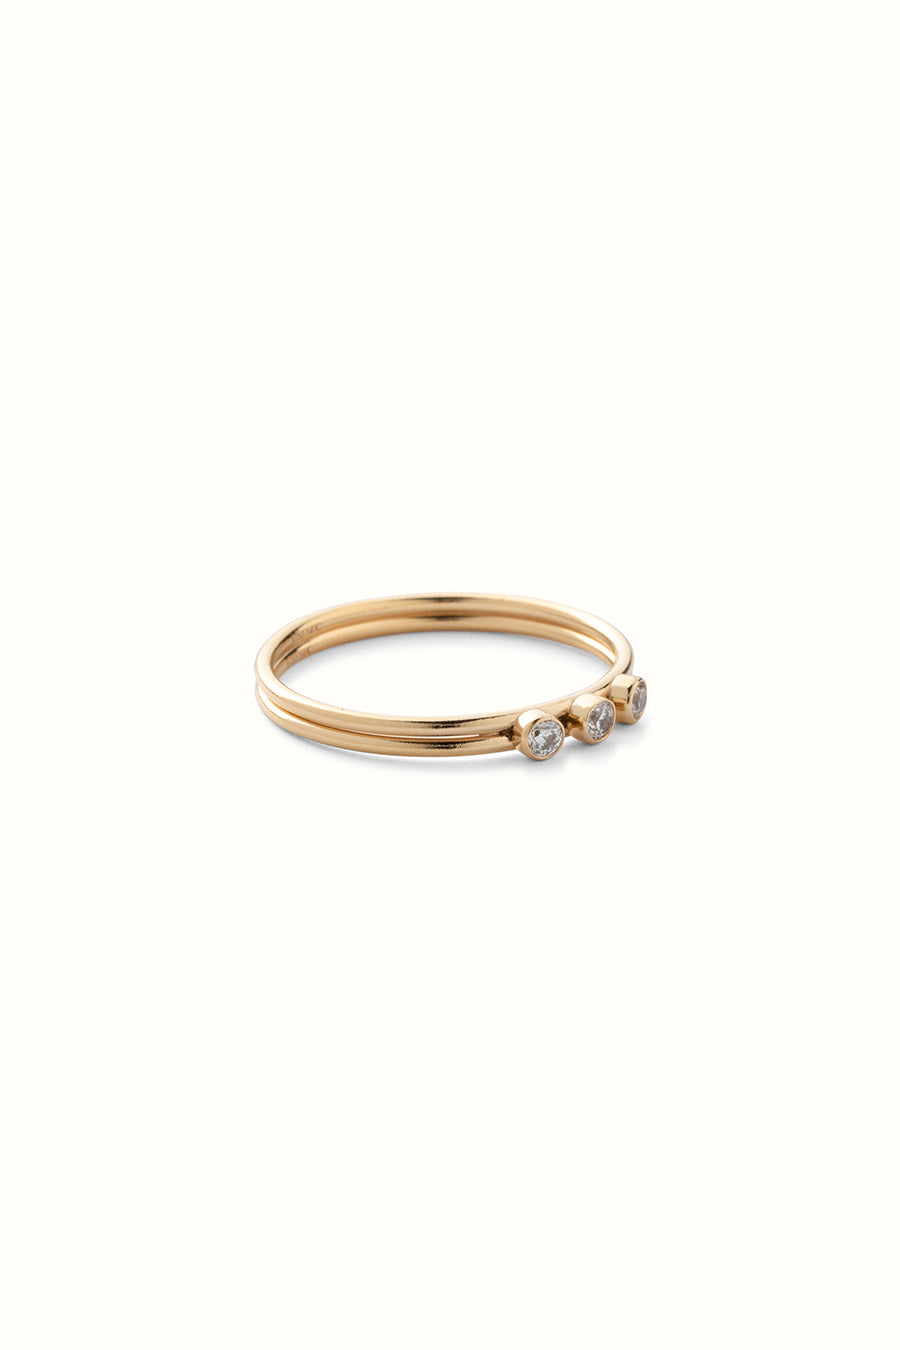 gold filled ring with 3 zirconia gemstones on a white background